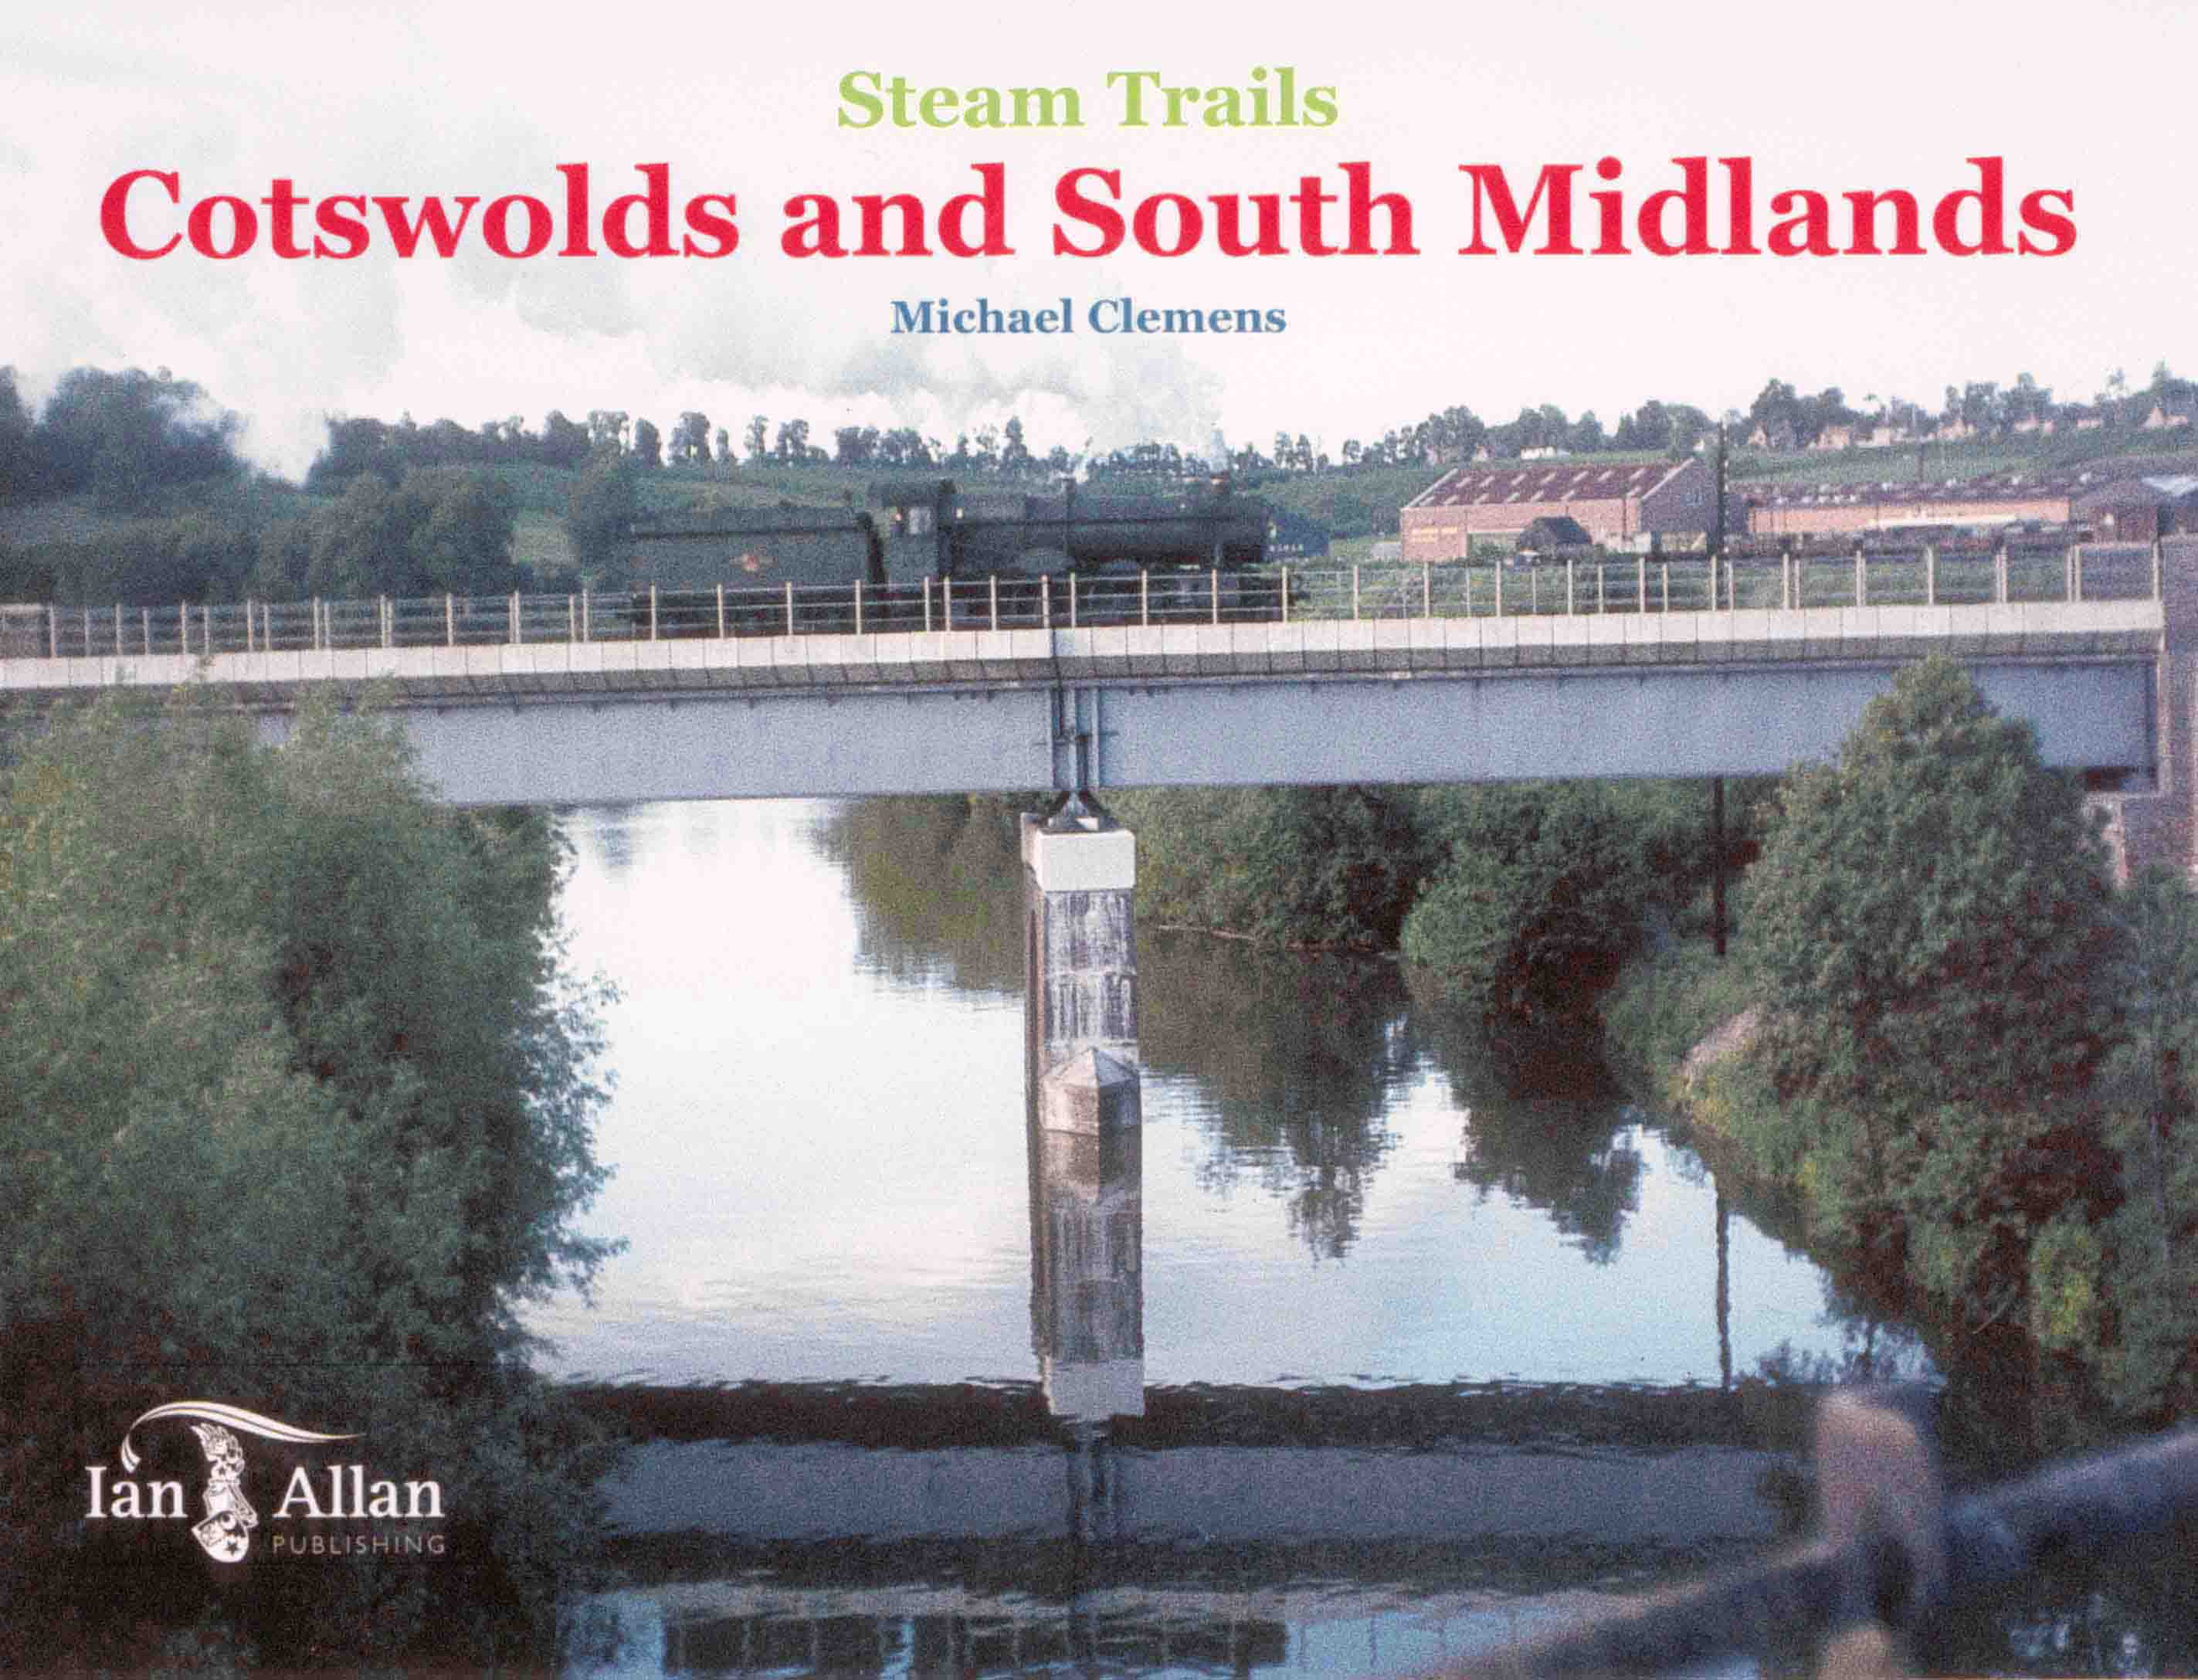 Steam Trails 'Cotswolds and South Midlands' - Published by Ian Allan.  A Hall crosses the River Avon Bridge at Evesham in the summer of 1964.